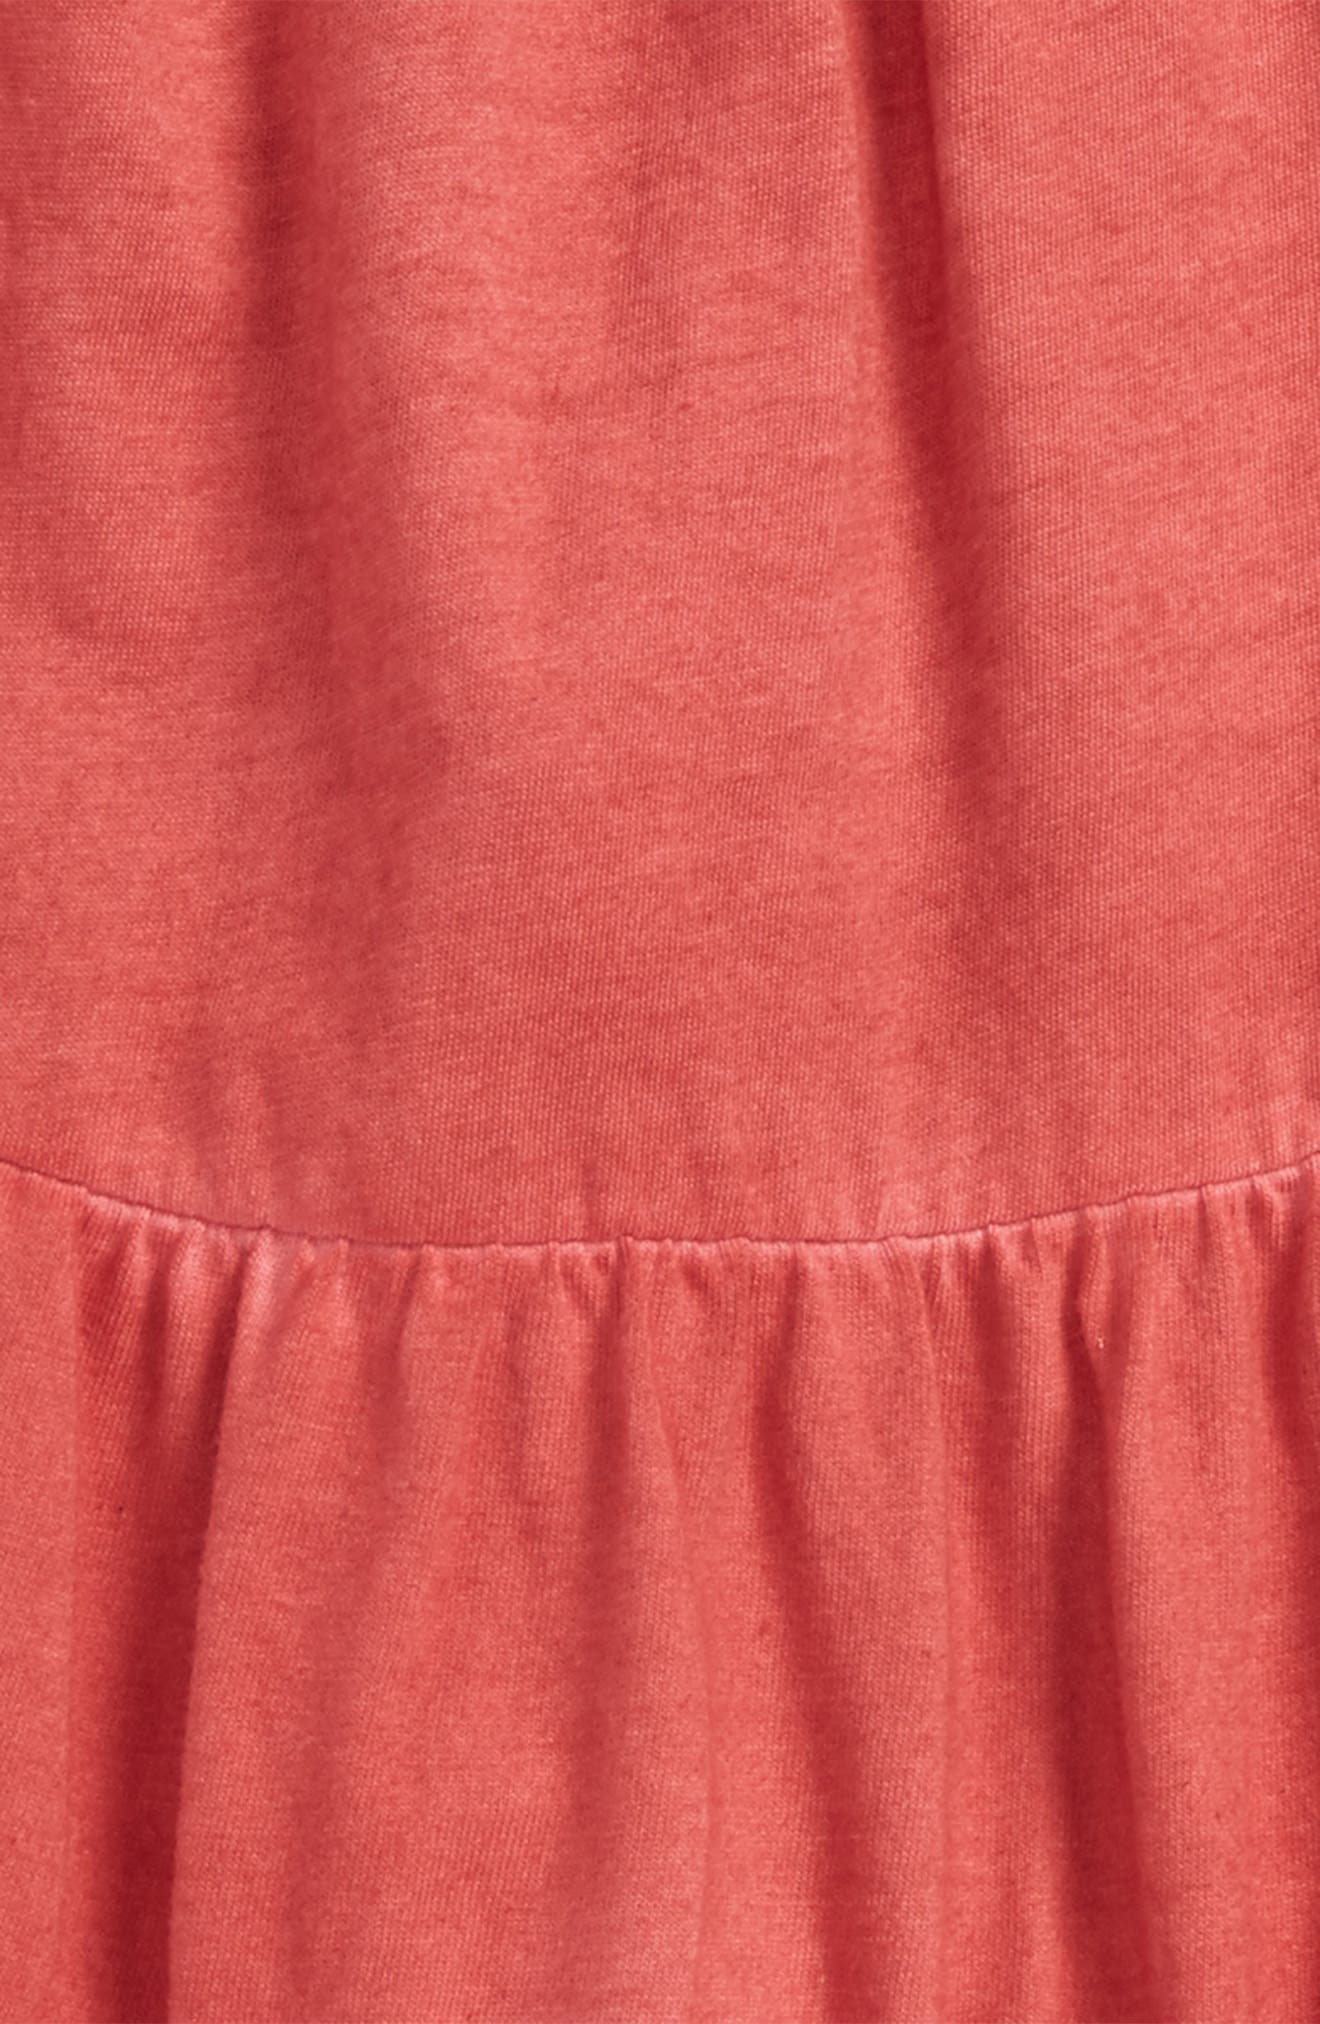 Organic Cotton Tiered Dress,                             Alternate thumbnail 2, color,                             Red Barn